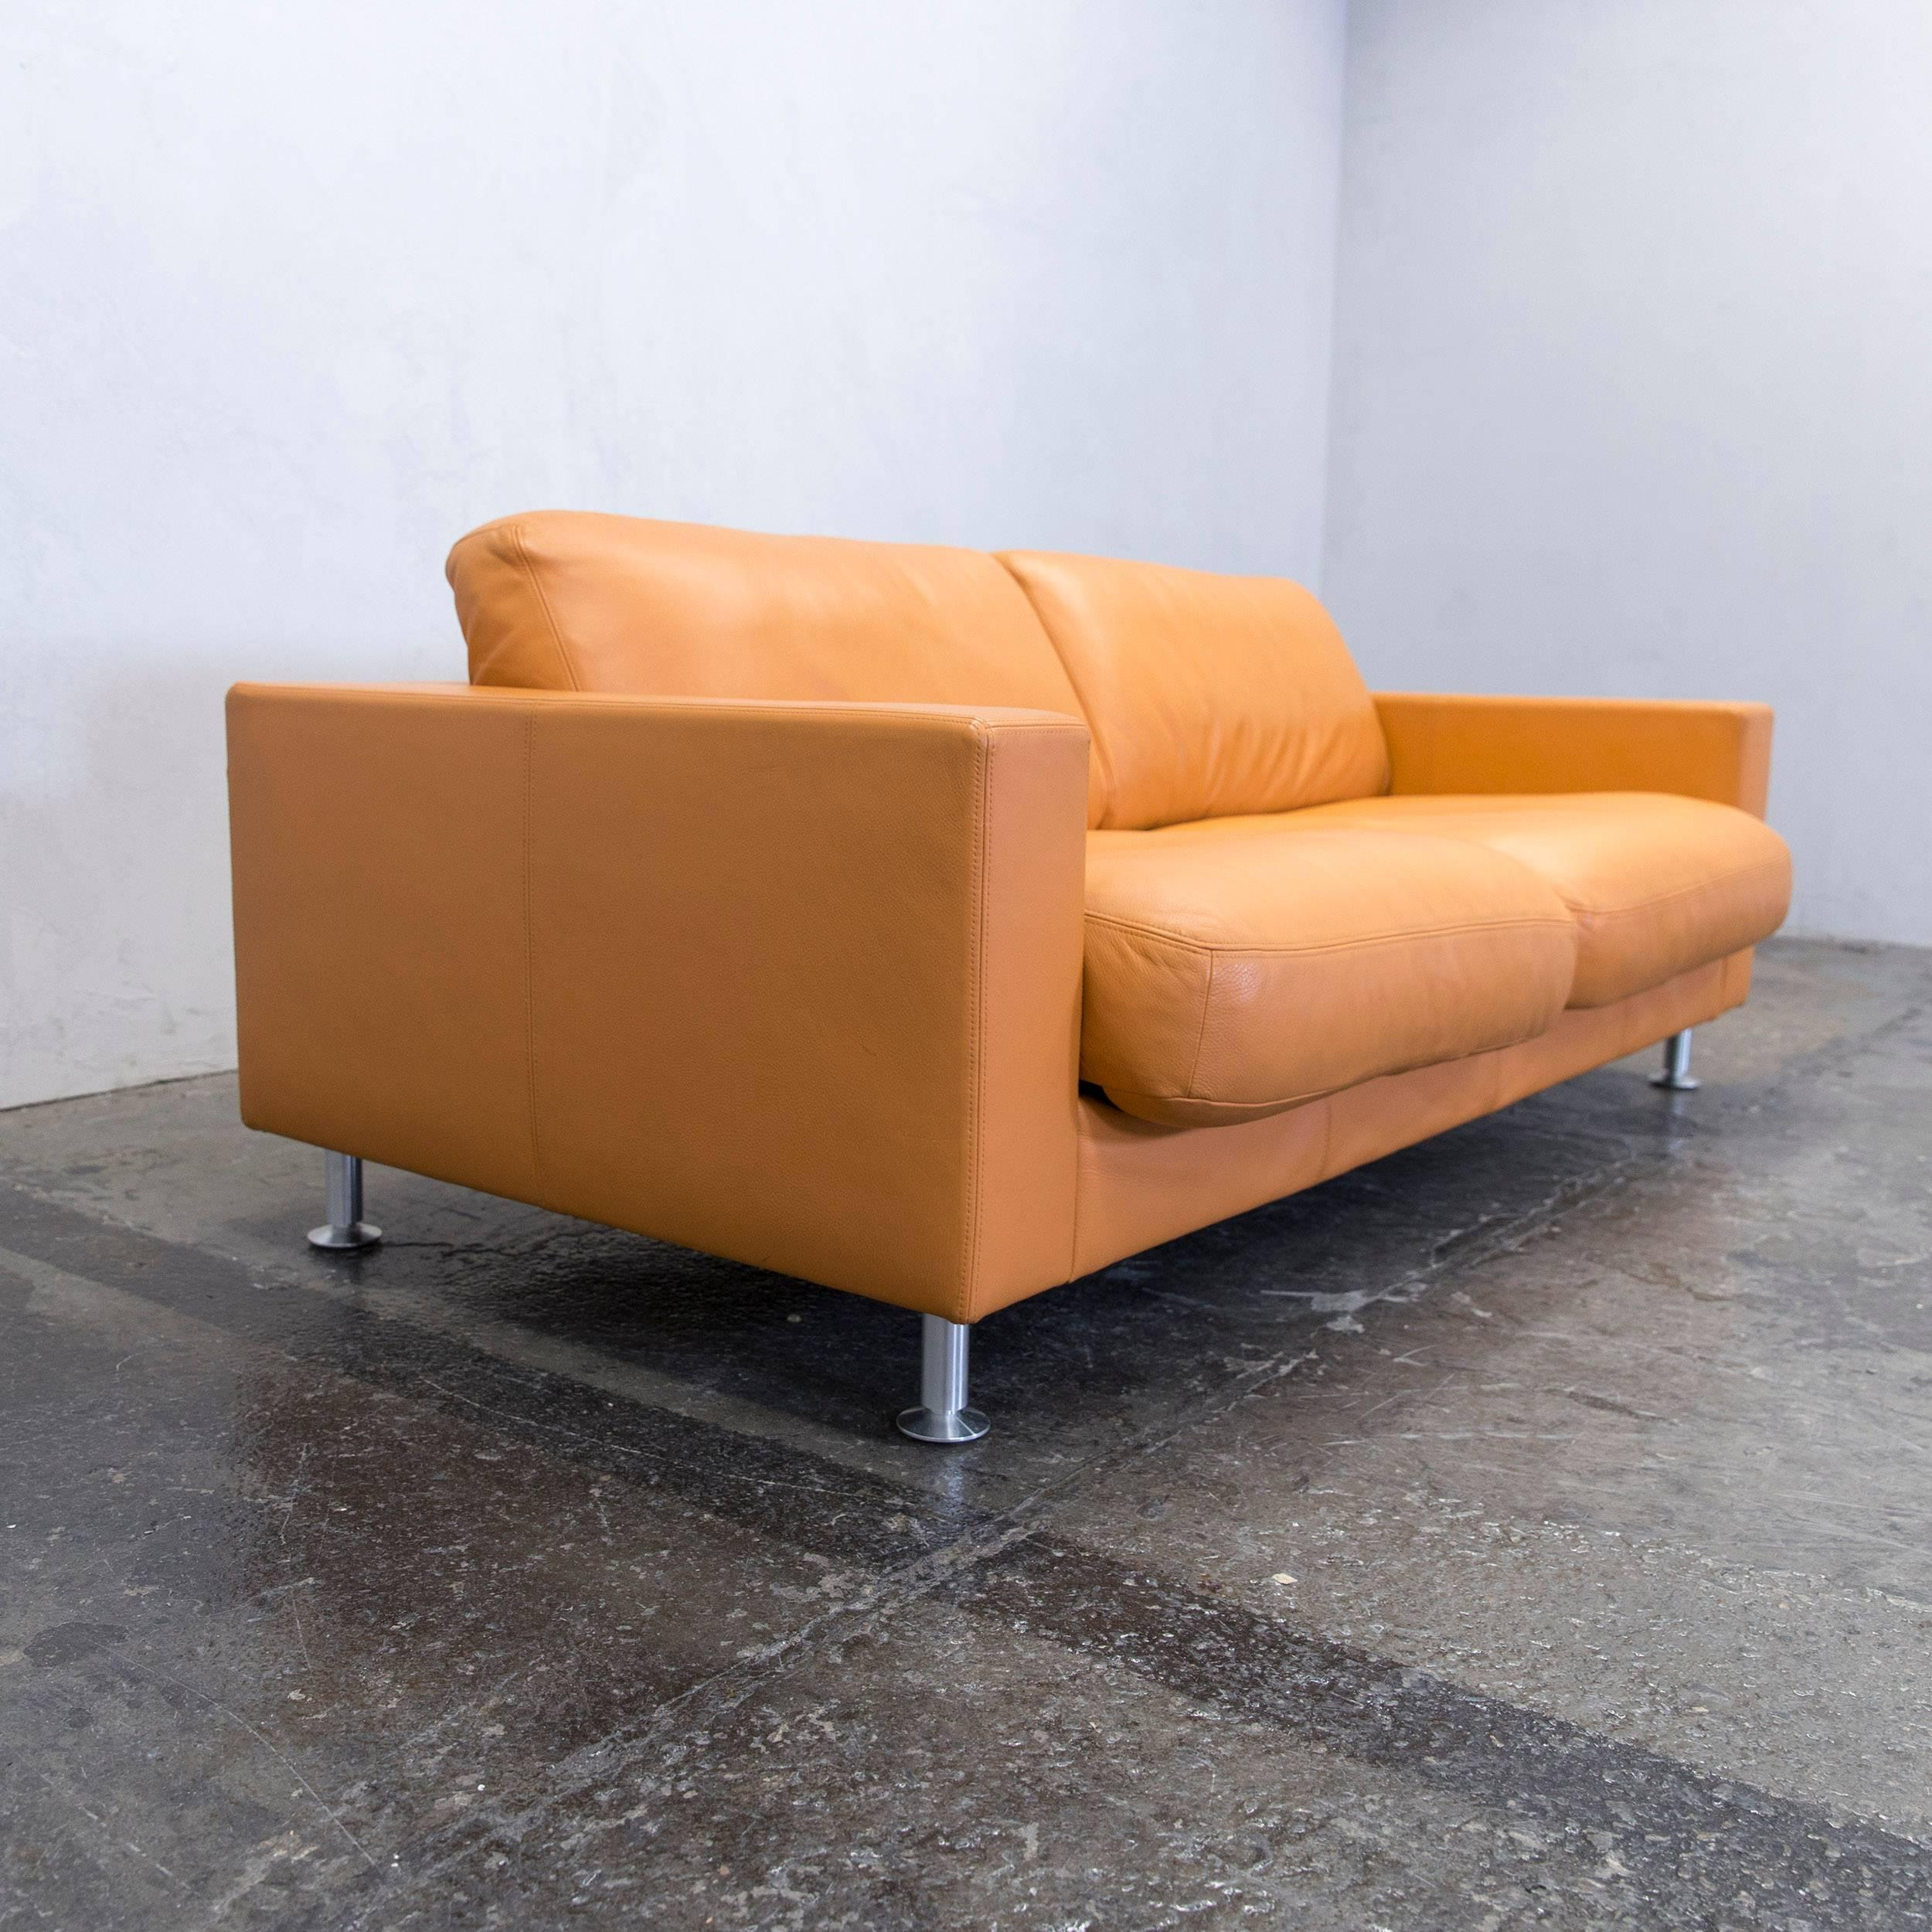 Couch Leder Cappuccino Designer Sofa Rolf Benz Trendy Alma By Beck Design For Rolf Benz